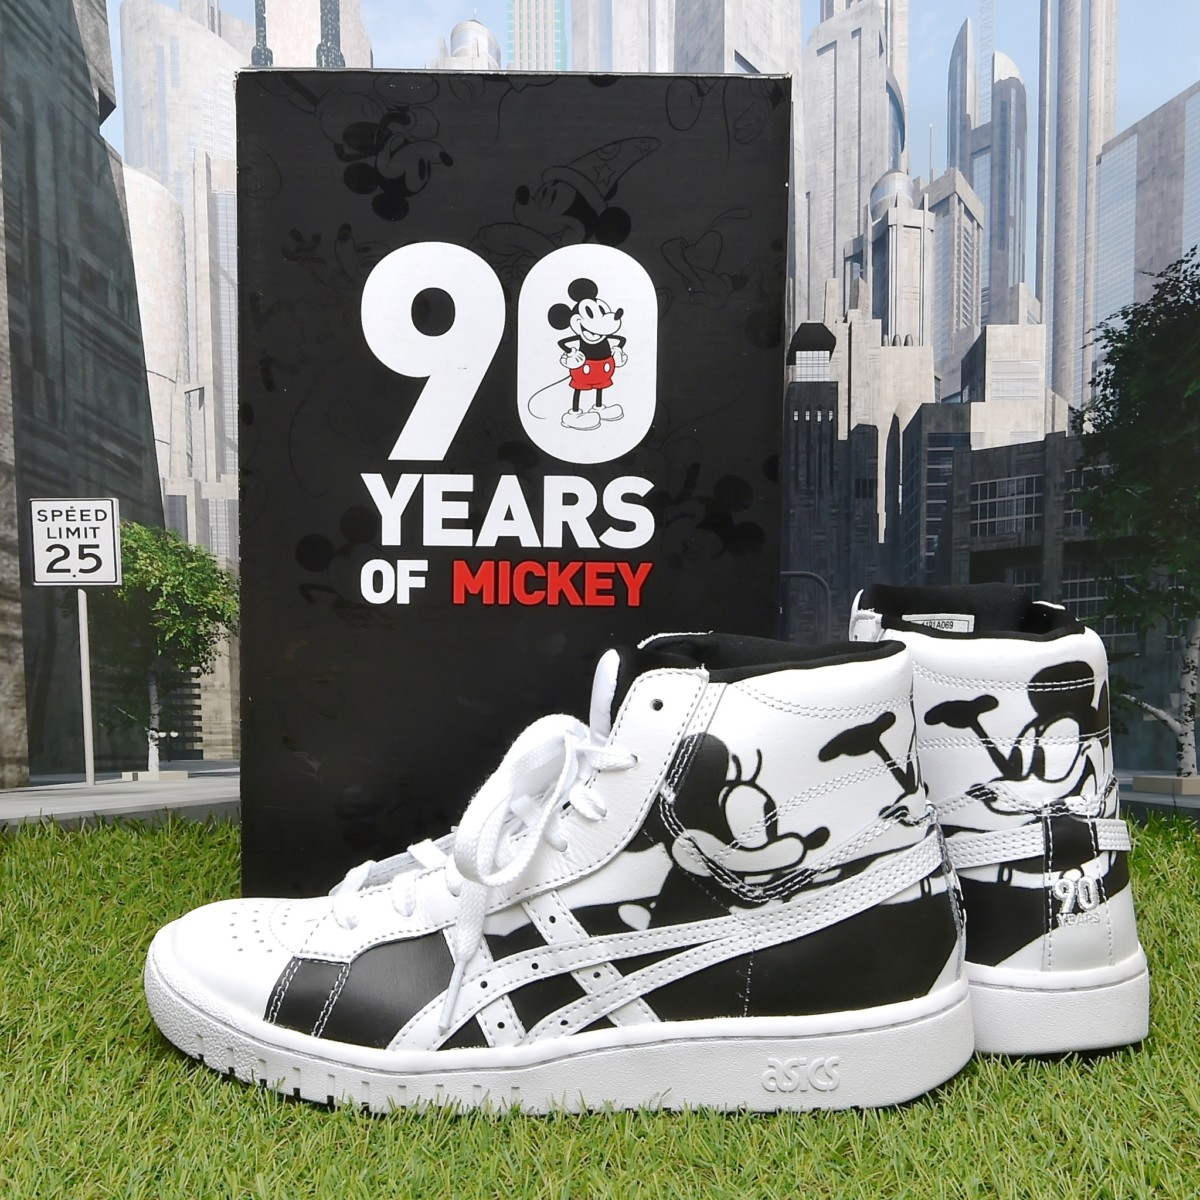 ASICSTIGER for Mickey 90th Anniversary パッケージ